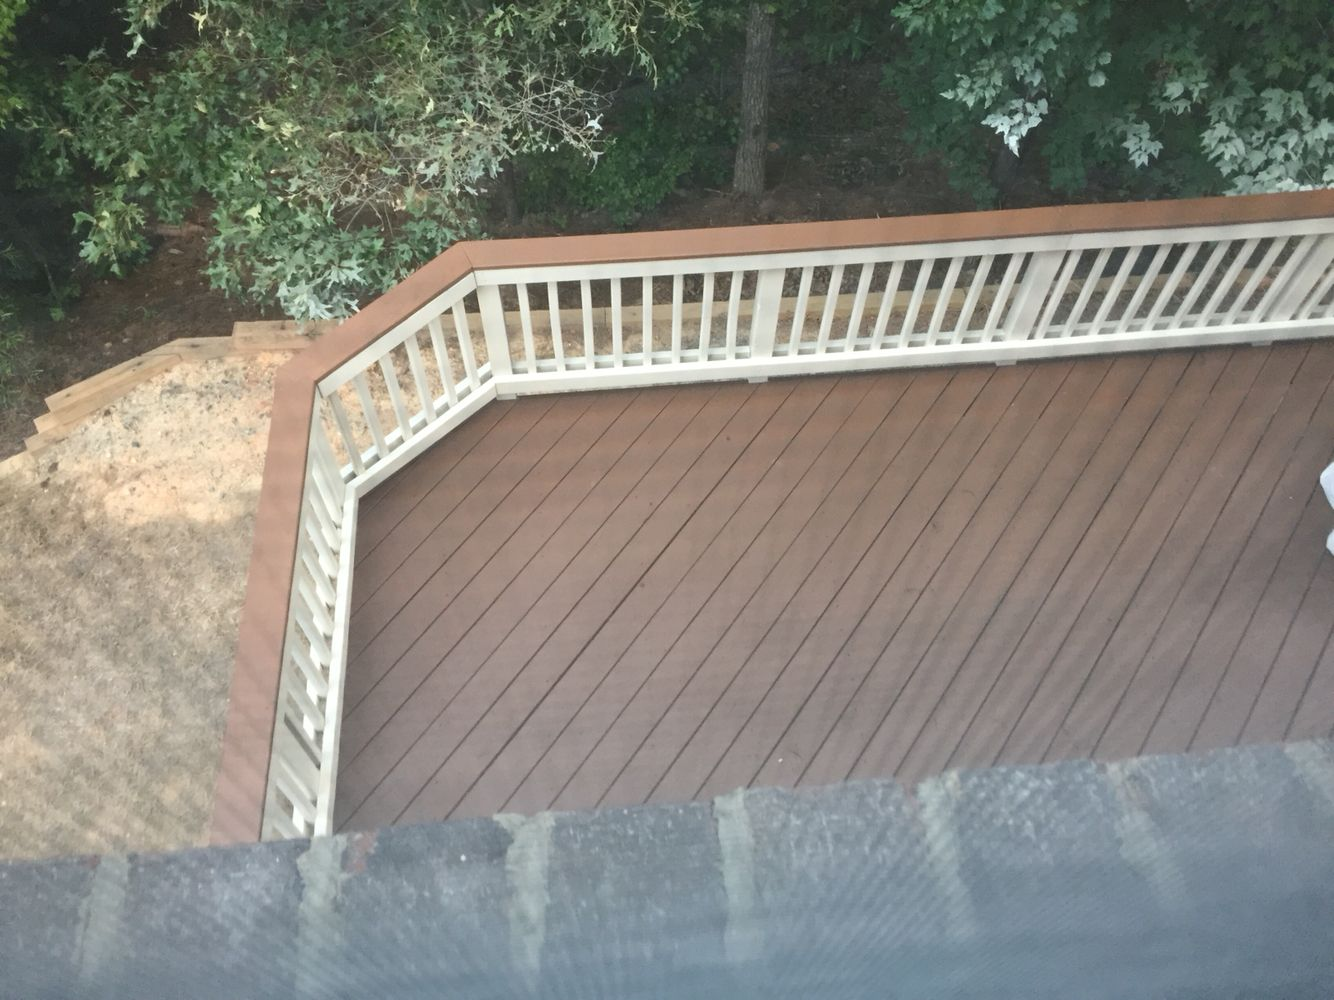 Two Toned Deck Sherwin Williams Pine Cone Deck Stain With Navajo White Rails Deck Colors Staining Deck Deck Stain Colors